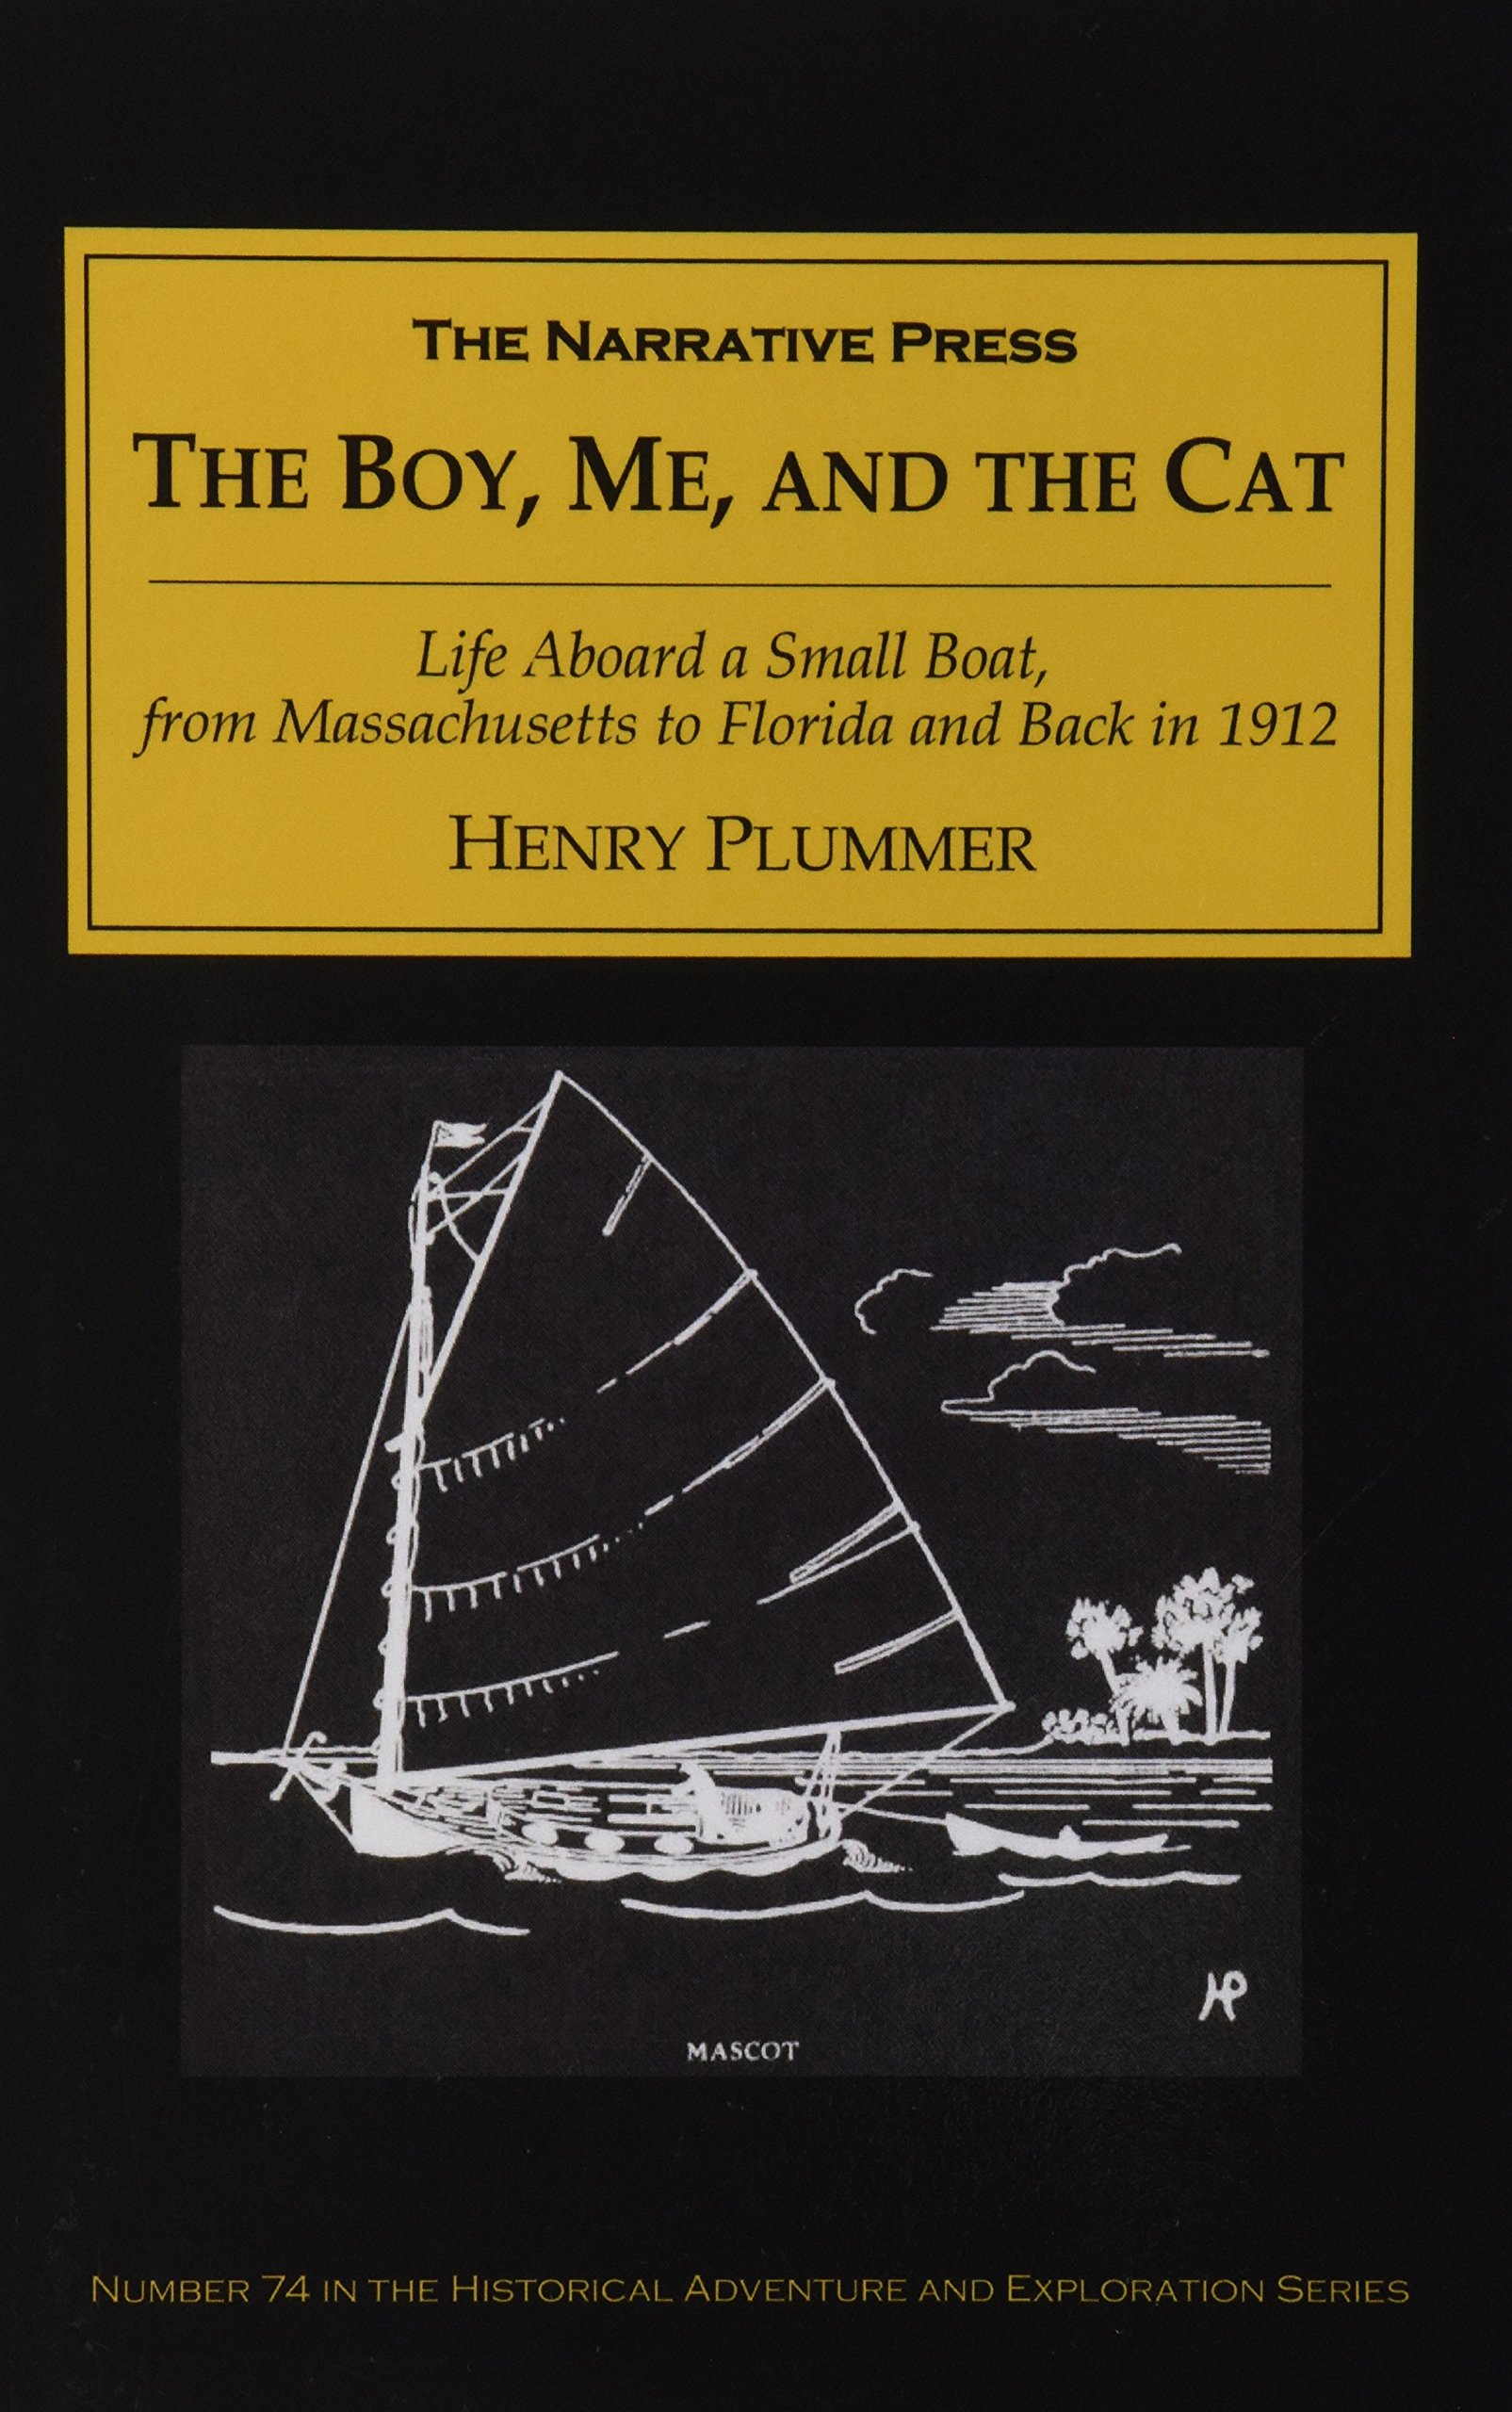 The Boy, Me, And The Cat: Henry Plummer: 9781589762268: Amazon: Books